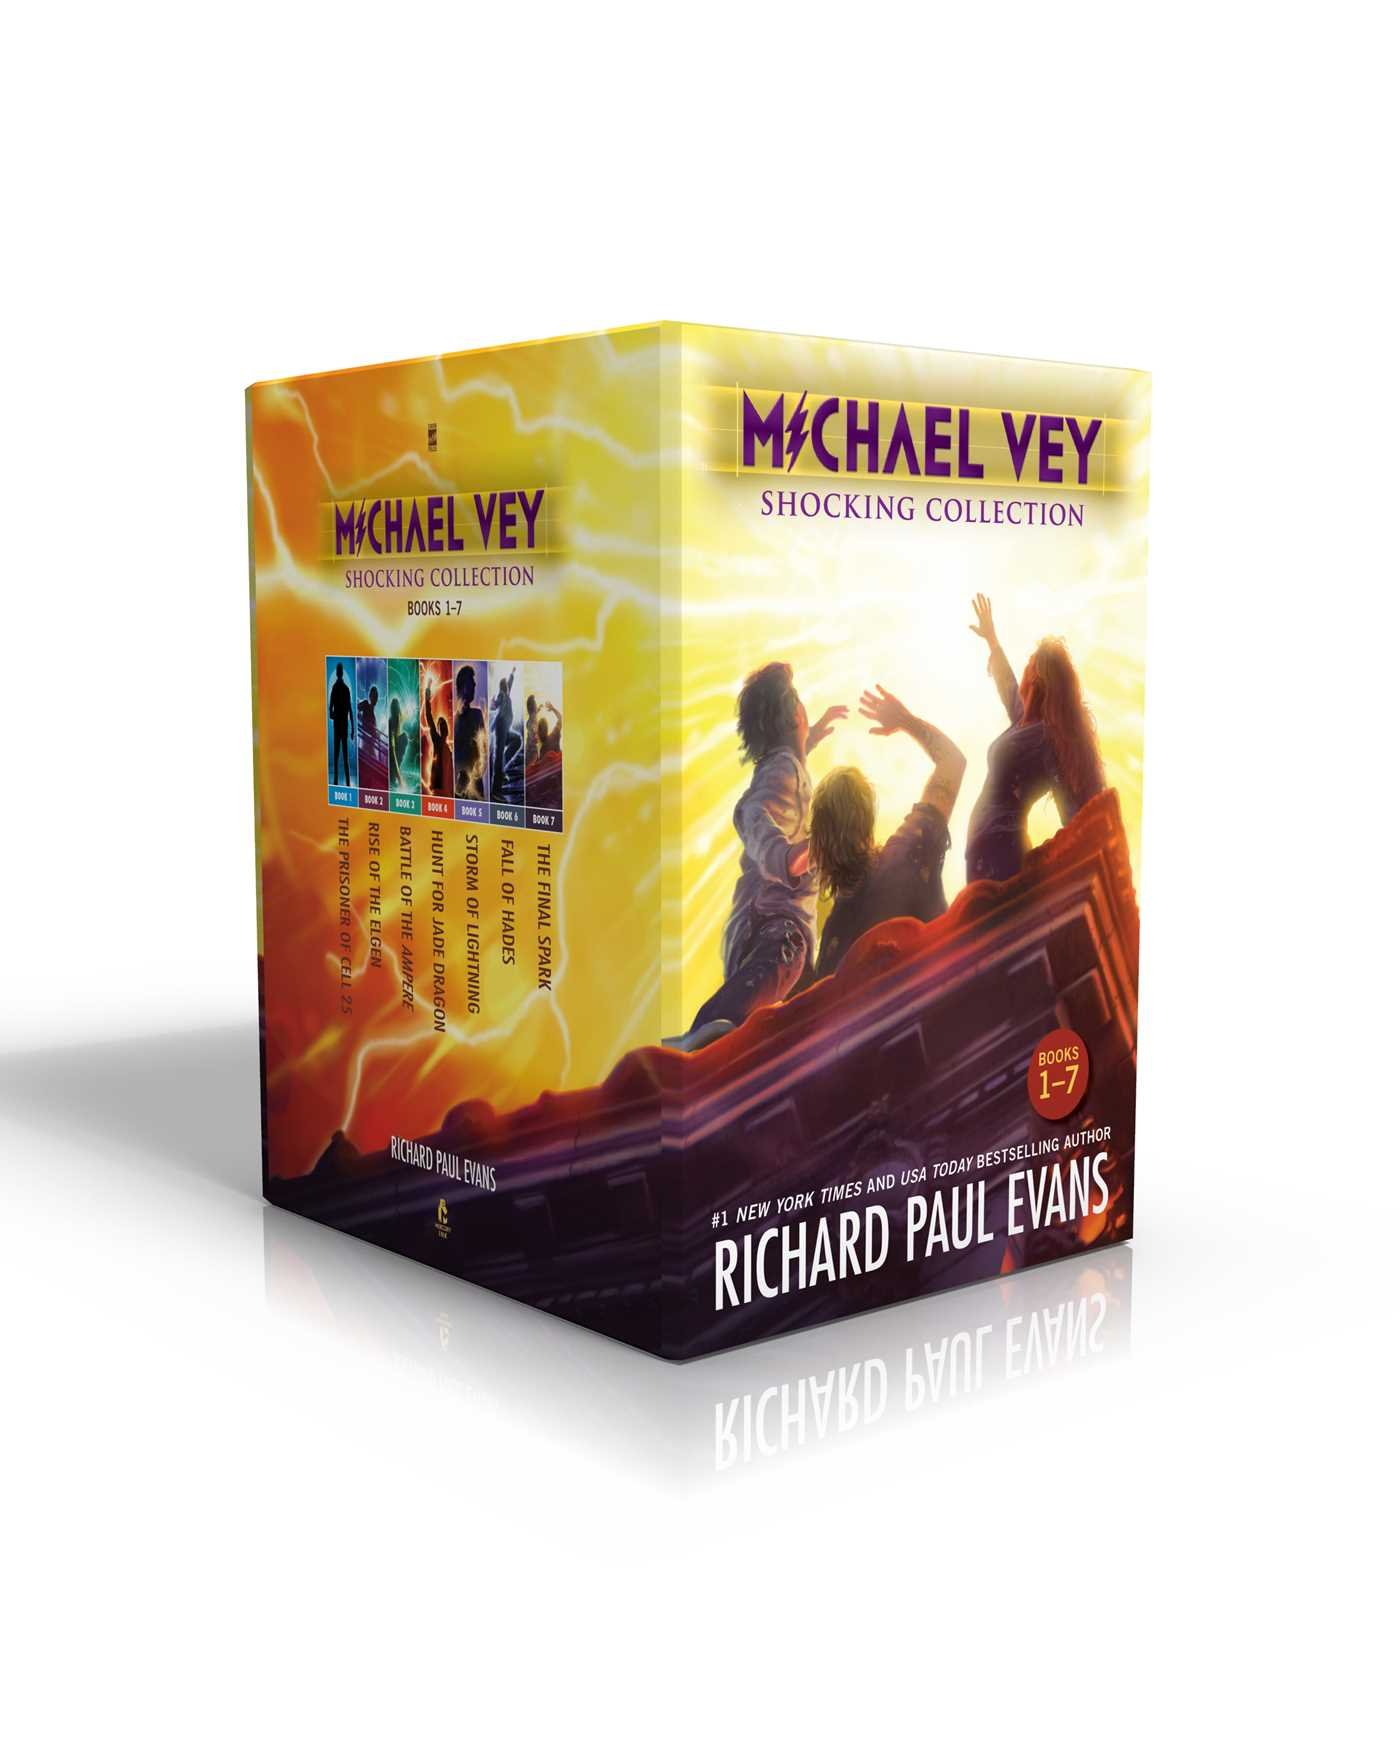 Michael Vey Shocking Collection Books 1-7: Michael Vey, Michael Vey 2, Michael Vey 3, Michael Vey 4, Michael Vey 5, Michael Vey 6, Michael Vey 7 by Simon Pulse/Mercury Ink